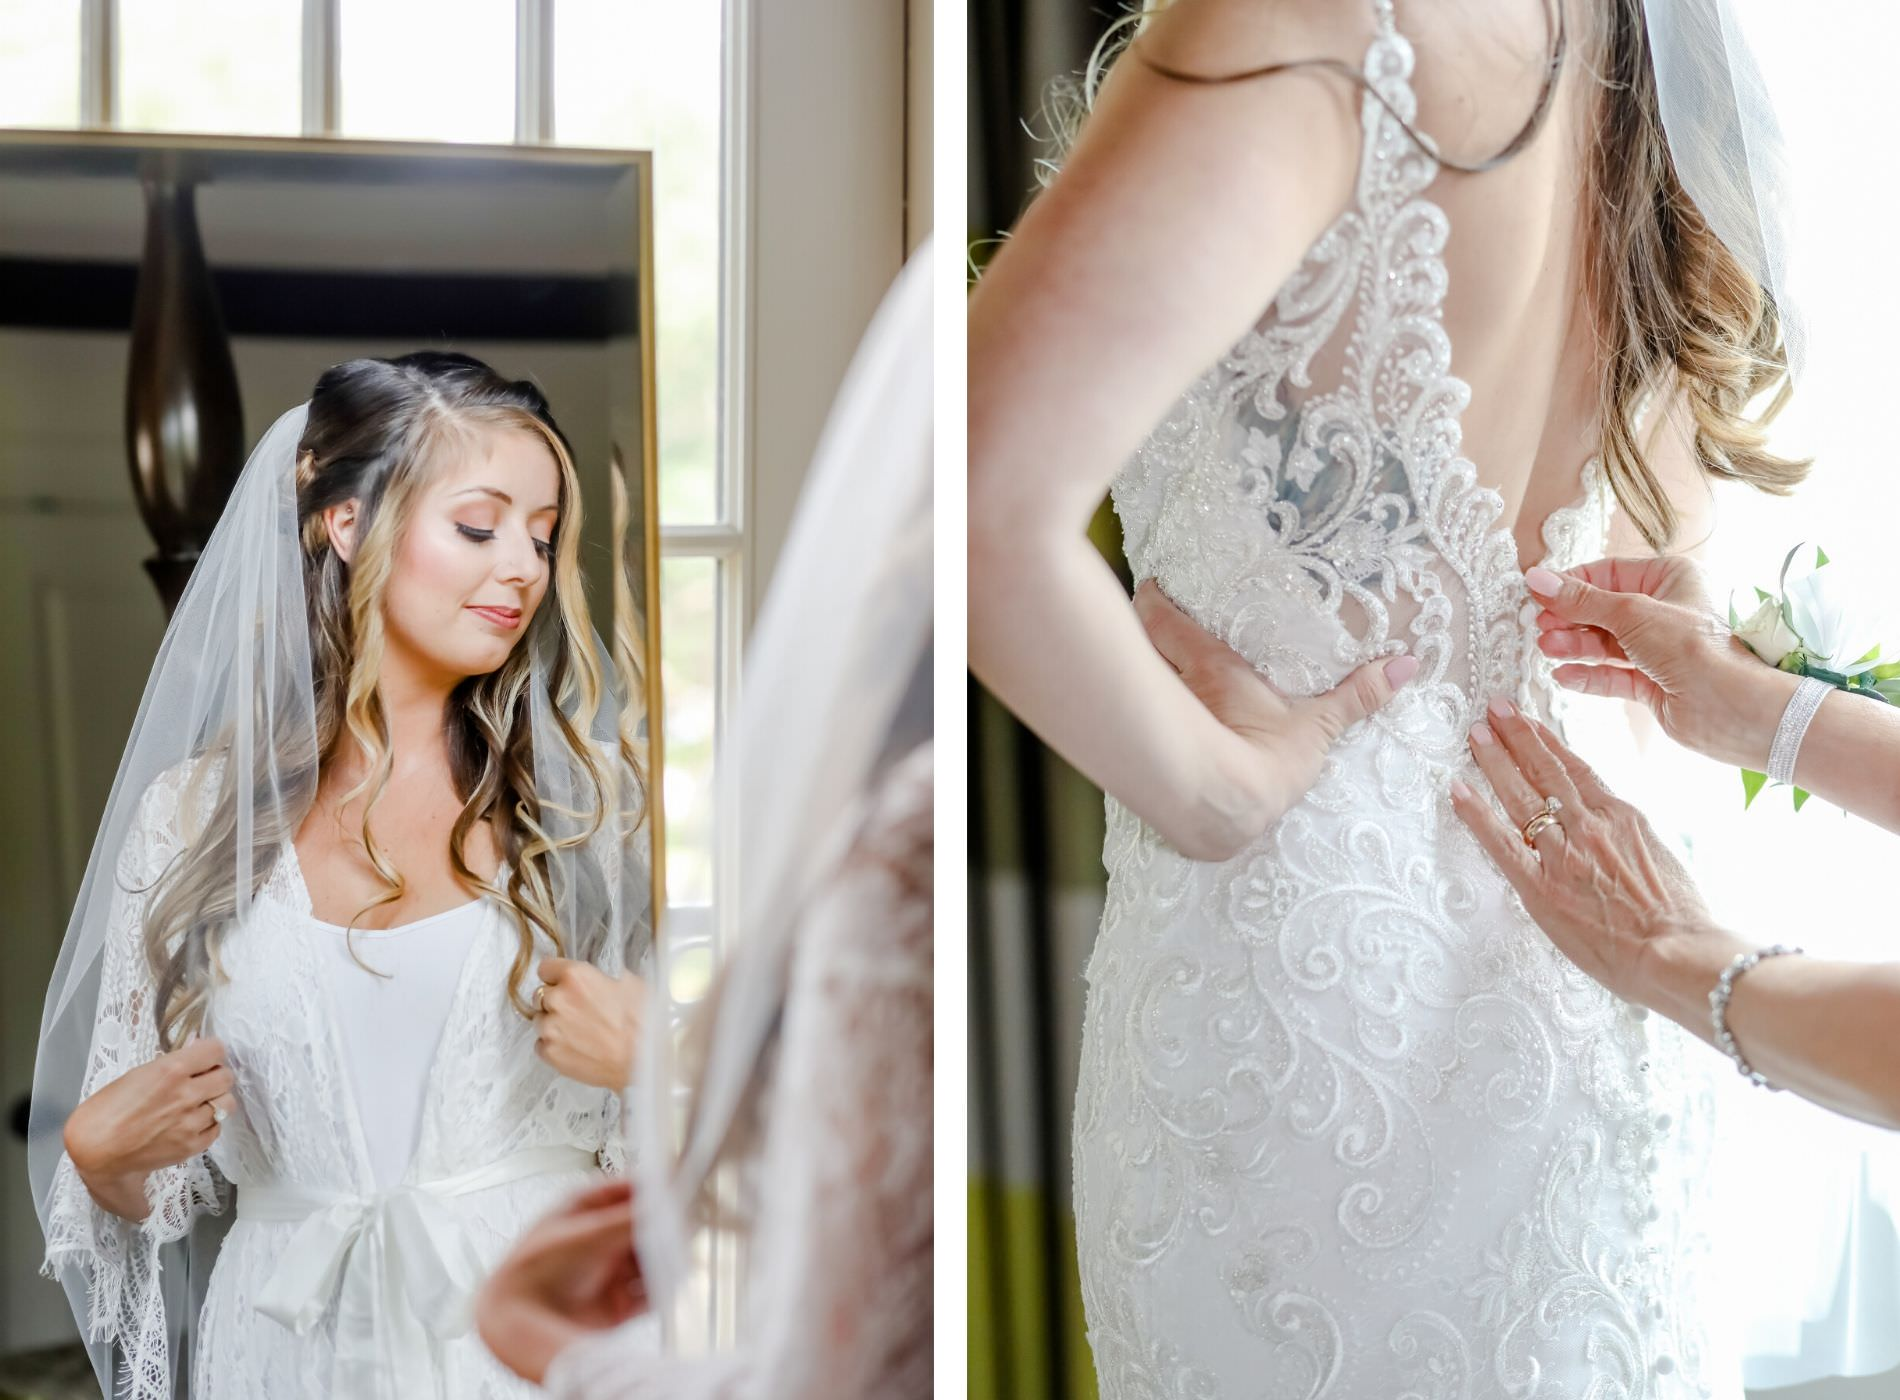 Elegant Bride Getting Ready Detail Shot, Tampa Bay Bride in Back of Lace of Allure Gown with Sheer Detailing Wedding Dress   Downtown St. Pete Wedding Hair and Make Up Artists Michele Renee The Studio   Tampa Bay Wedding Photographer Lifelong Photography Studio